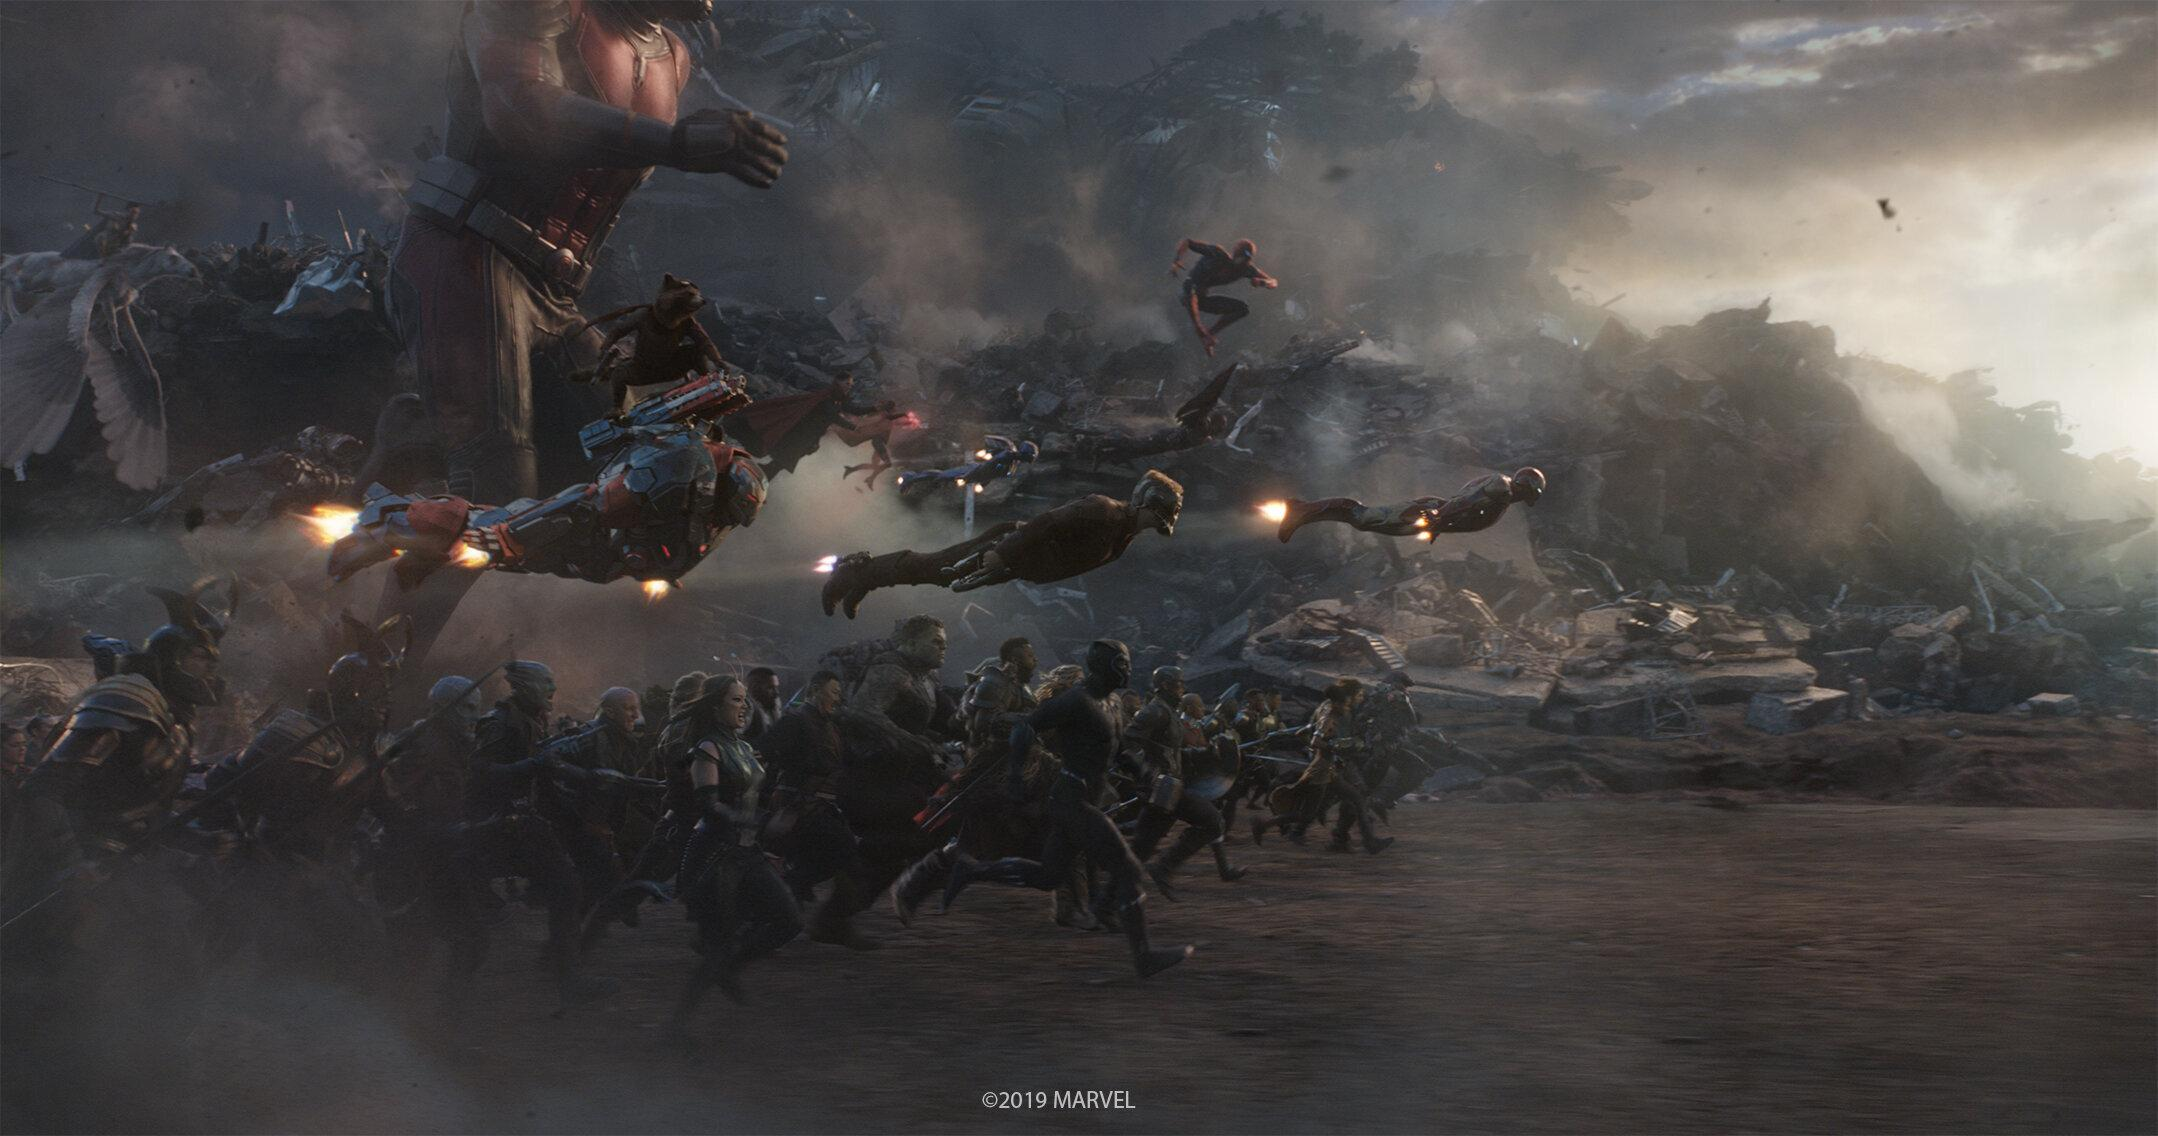 Captain America Vs Thanos Army Wallpapers Wallpaper Cave